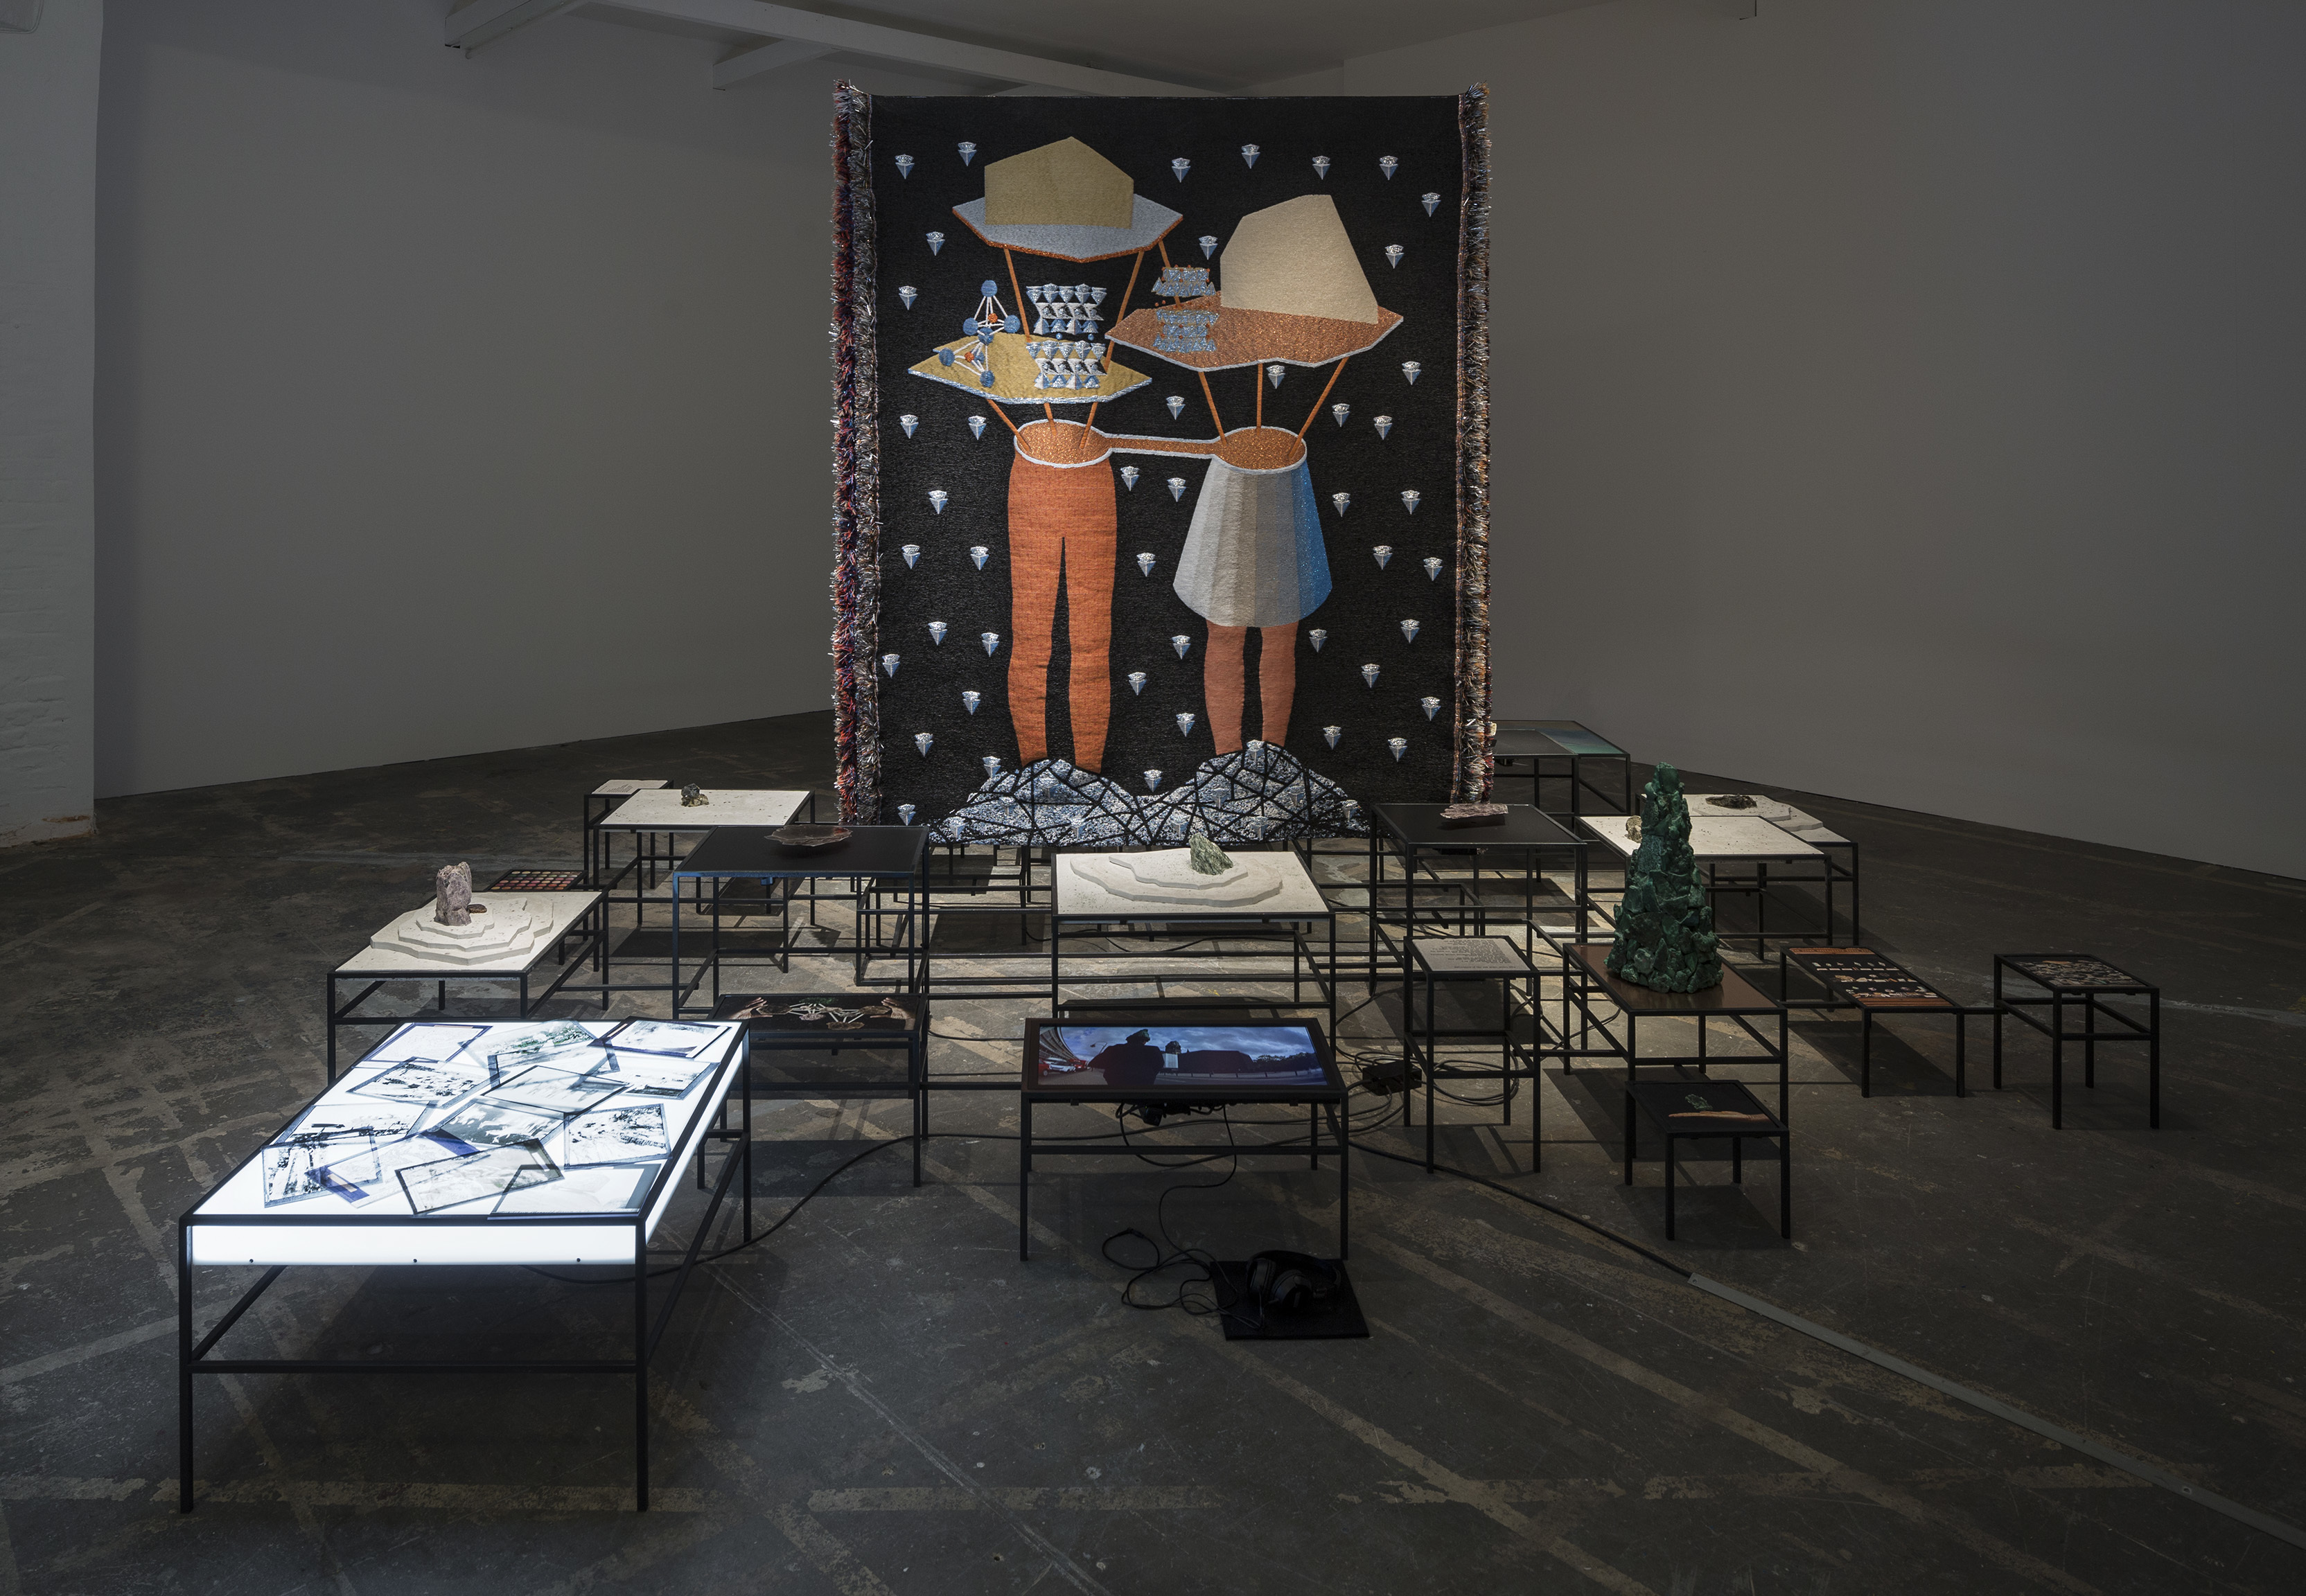 Otobong Nkanga, In Pursuit of Bling, 2014, installation view Courtesy Otobong Nkanga, fot. Anders Sune Berg